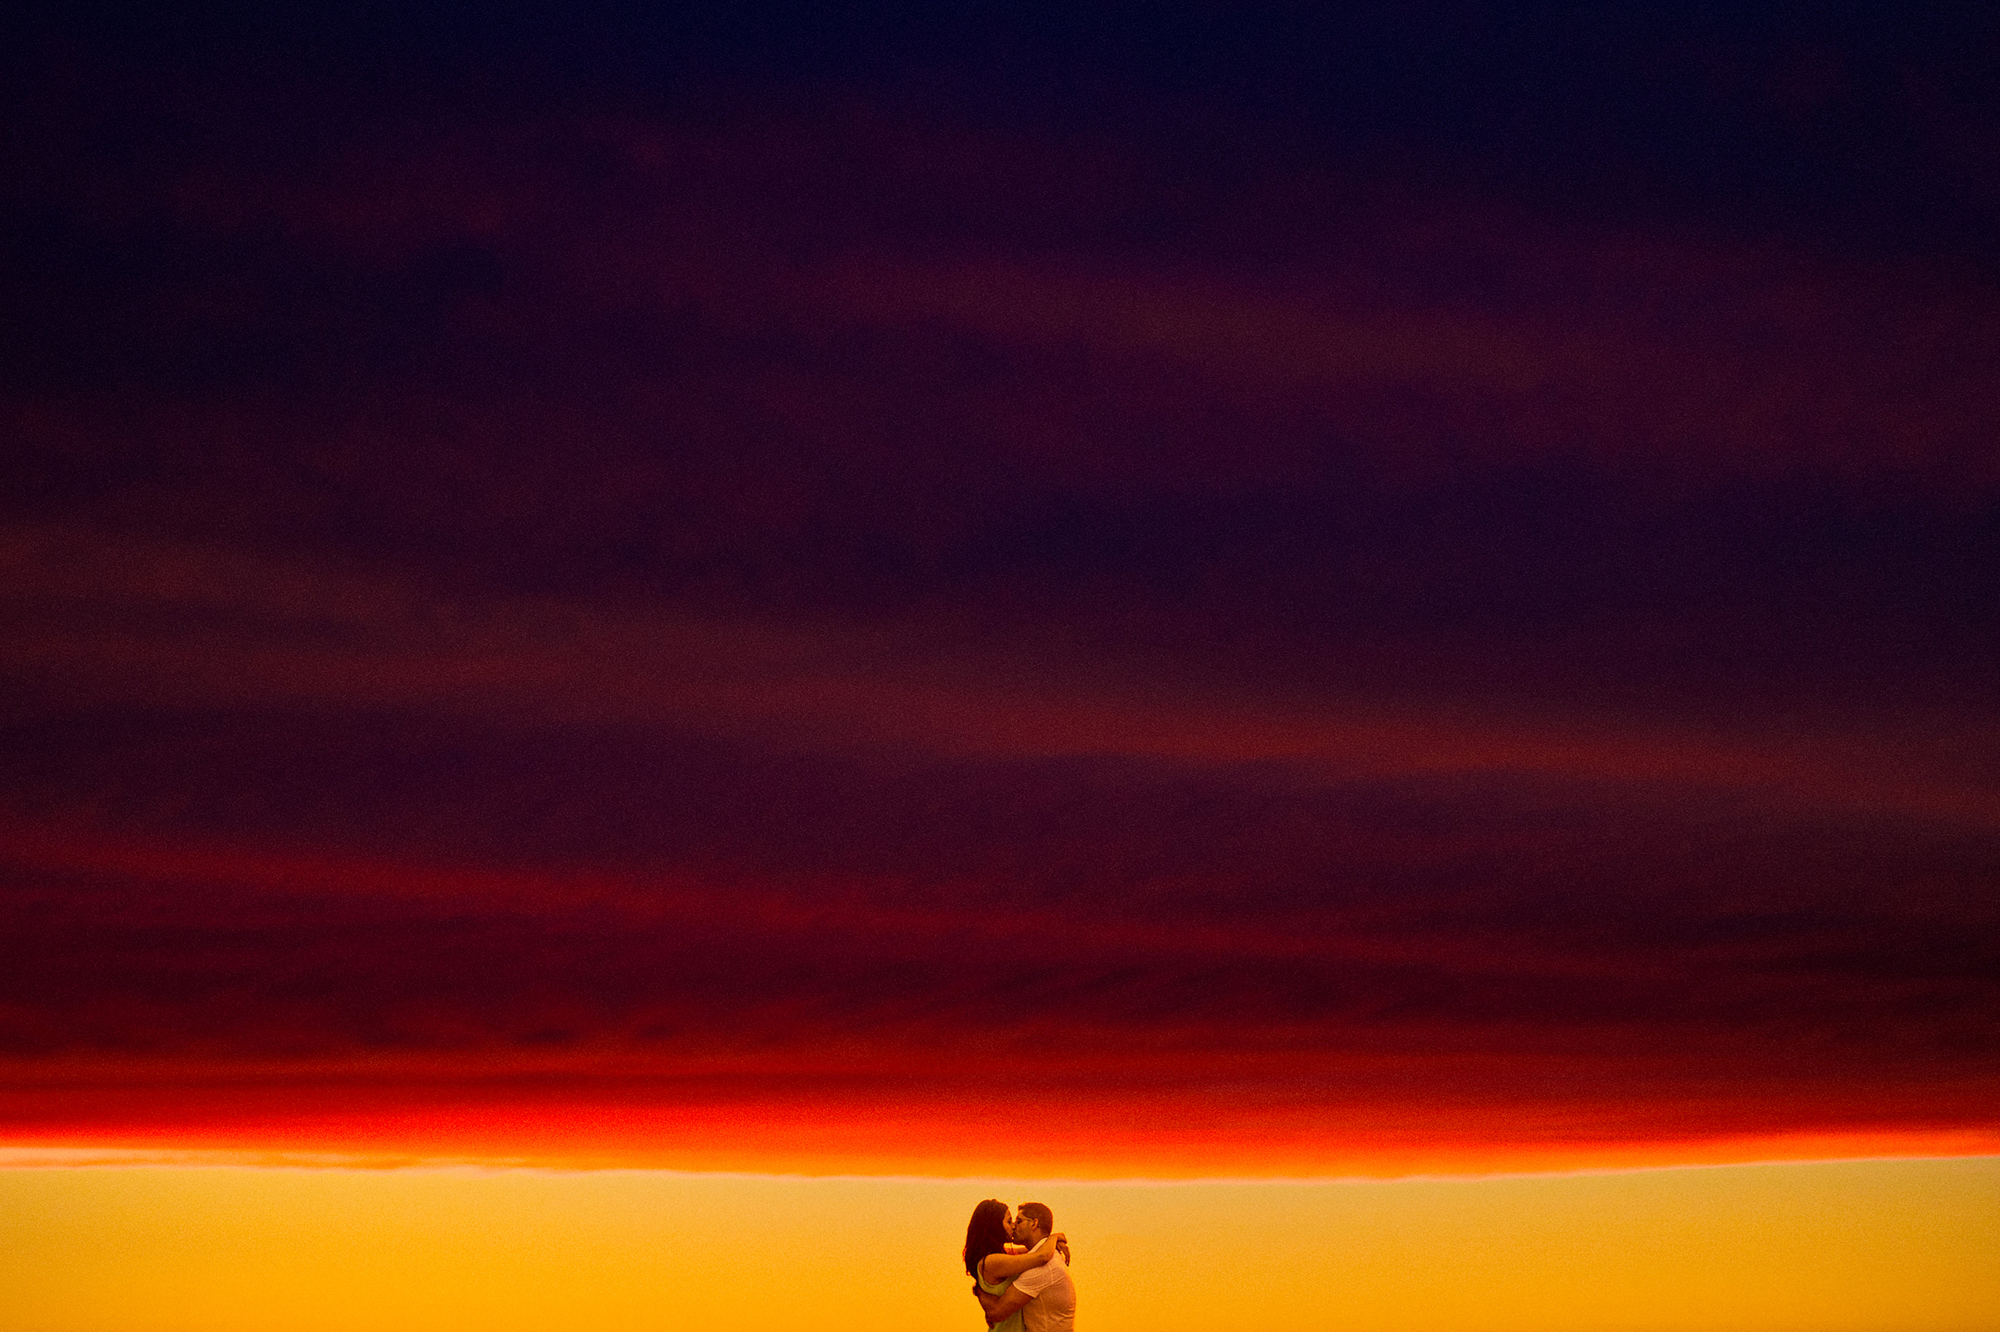 couple-kisses-in-front-of-electric-red-sunset-worlds-best-wedding-photos-jeff-cooke-nova-scotia-wedding-photographers